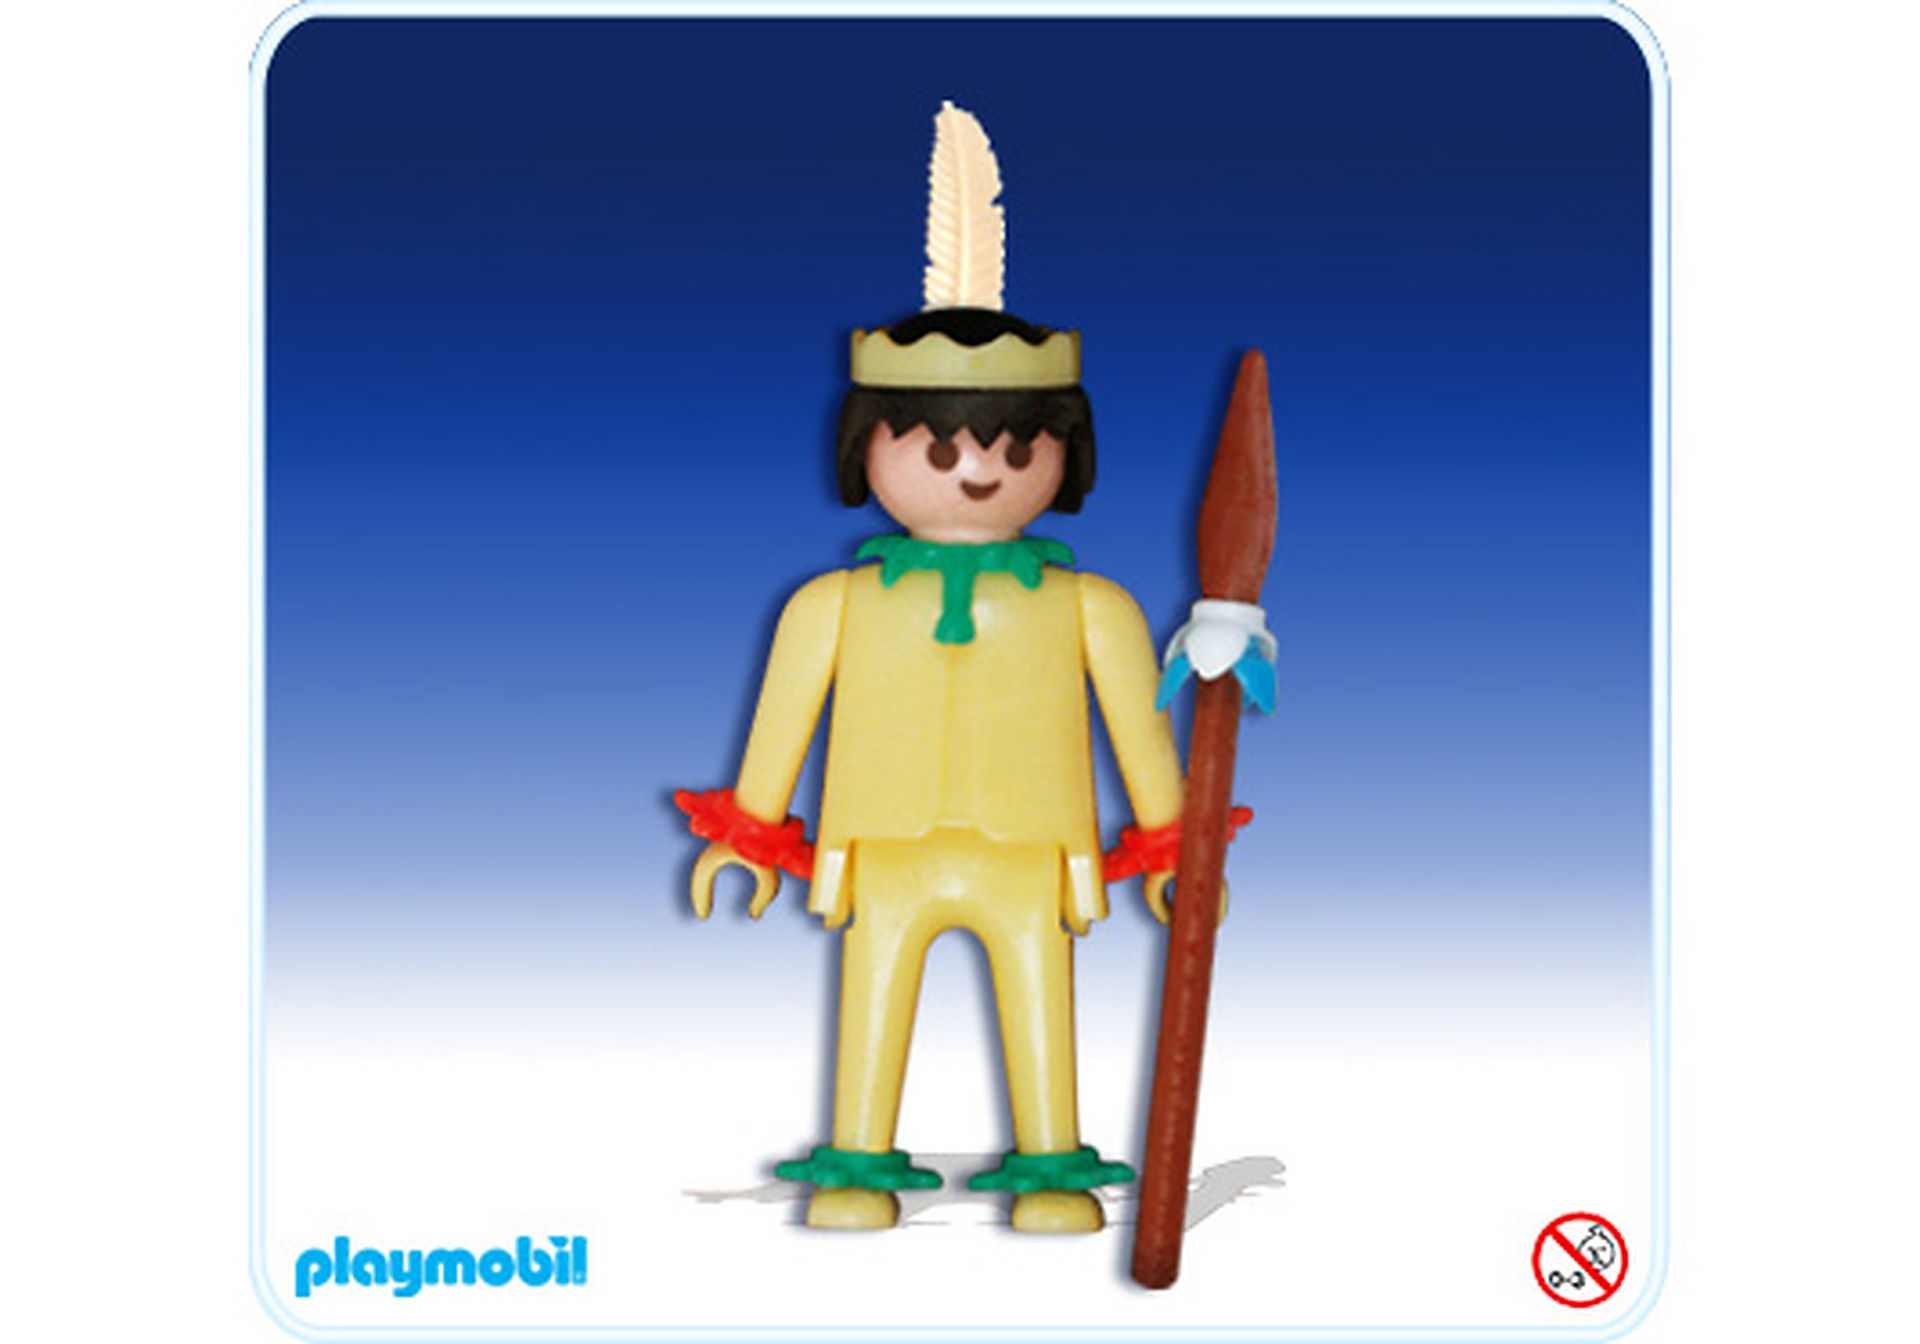 http://media.playmobil.com/i/playmobil/3128-A_product_detail/Indianer